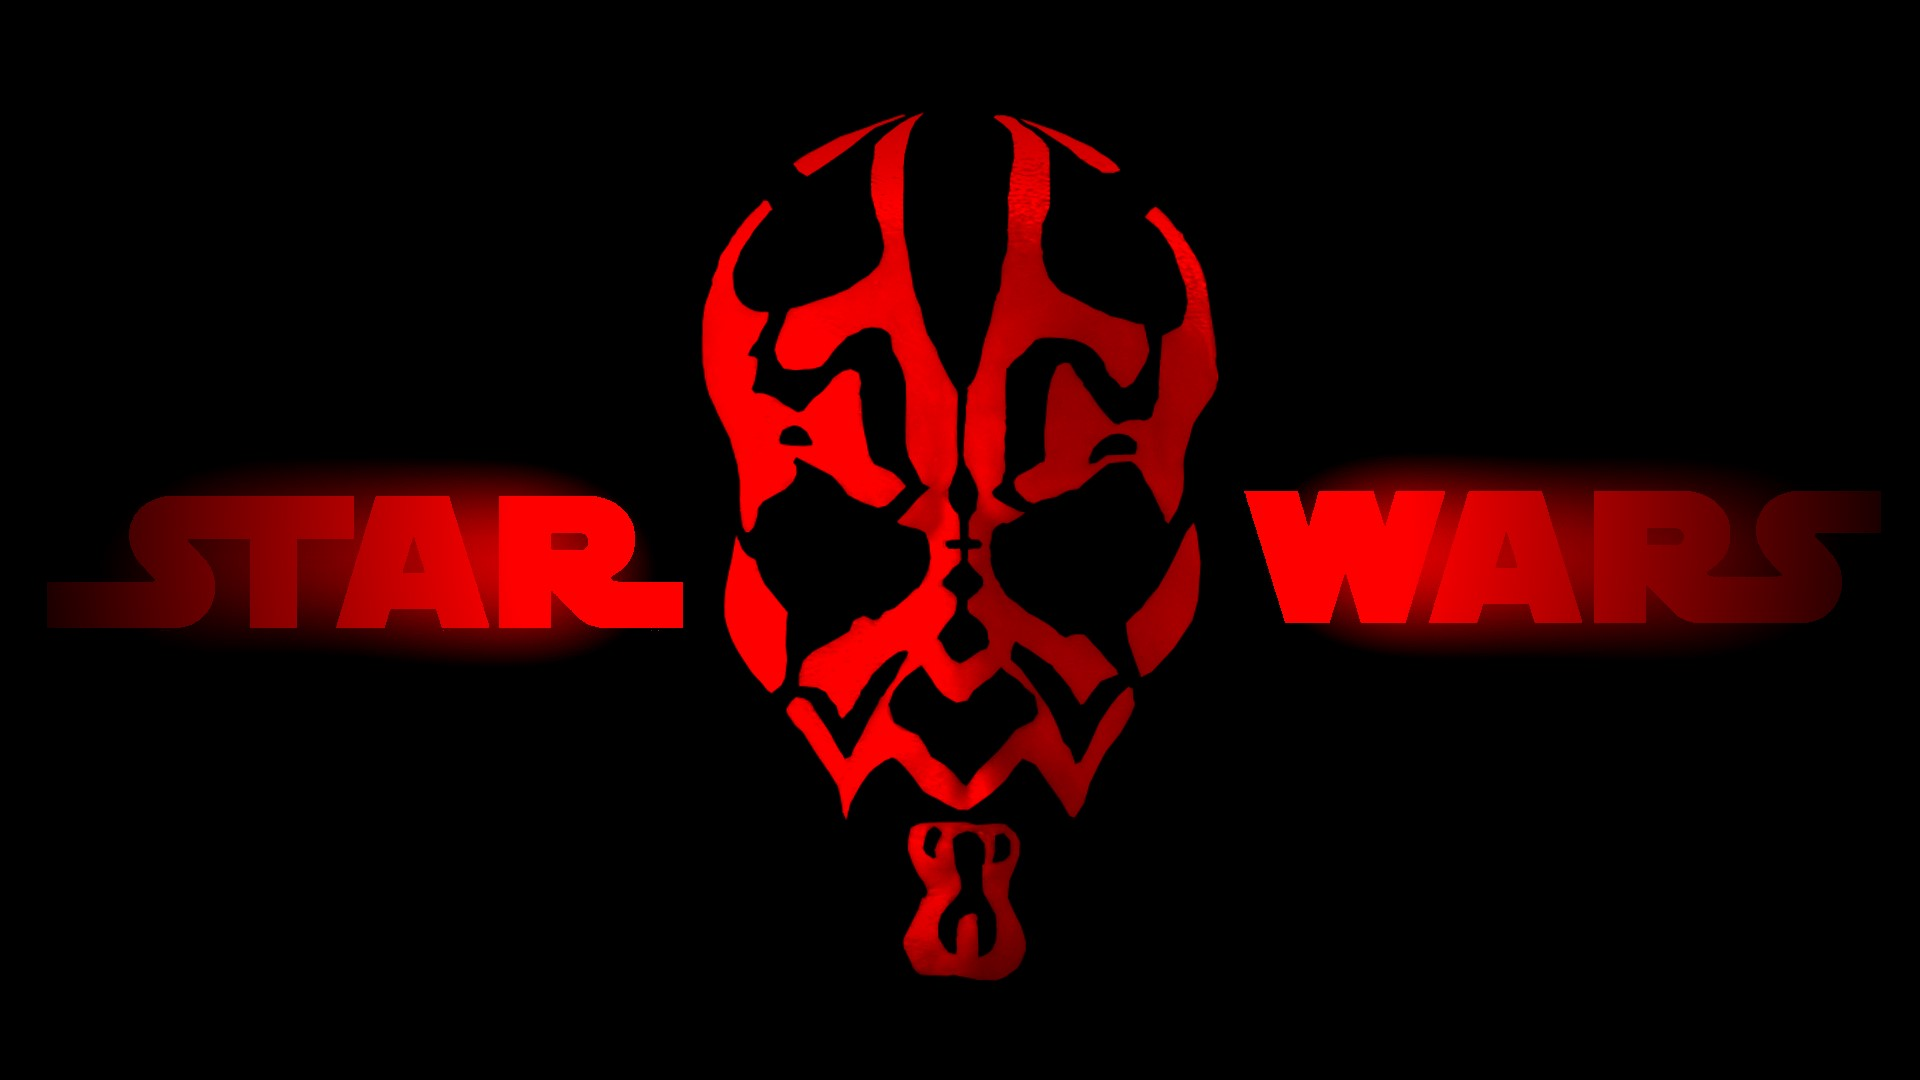 48 Star Wars Darth Maul Wallpaper On Wallpapersafari